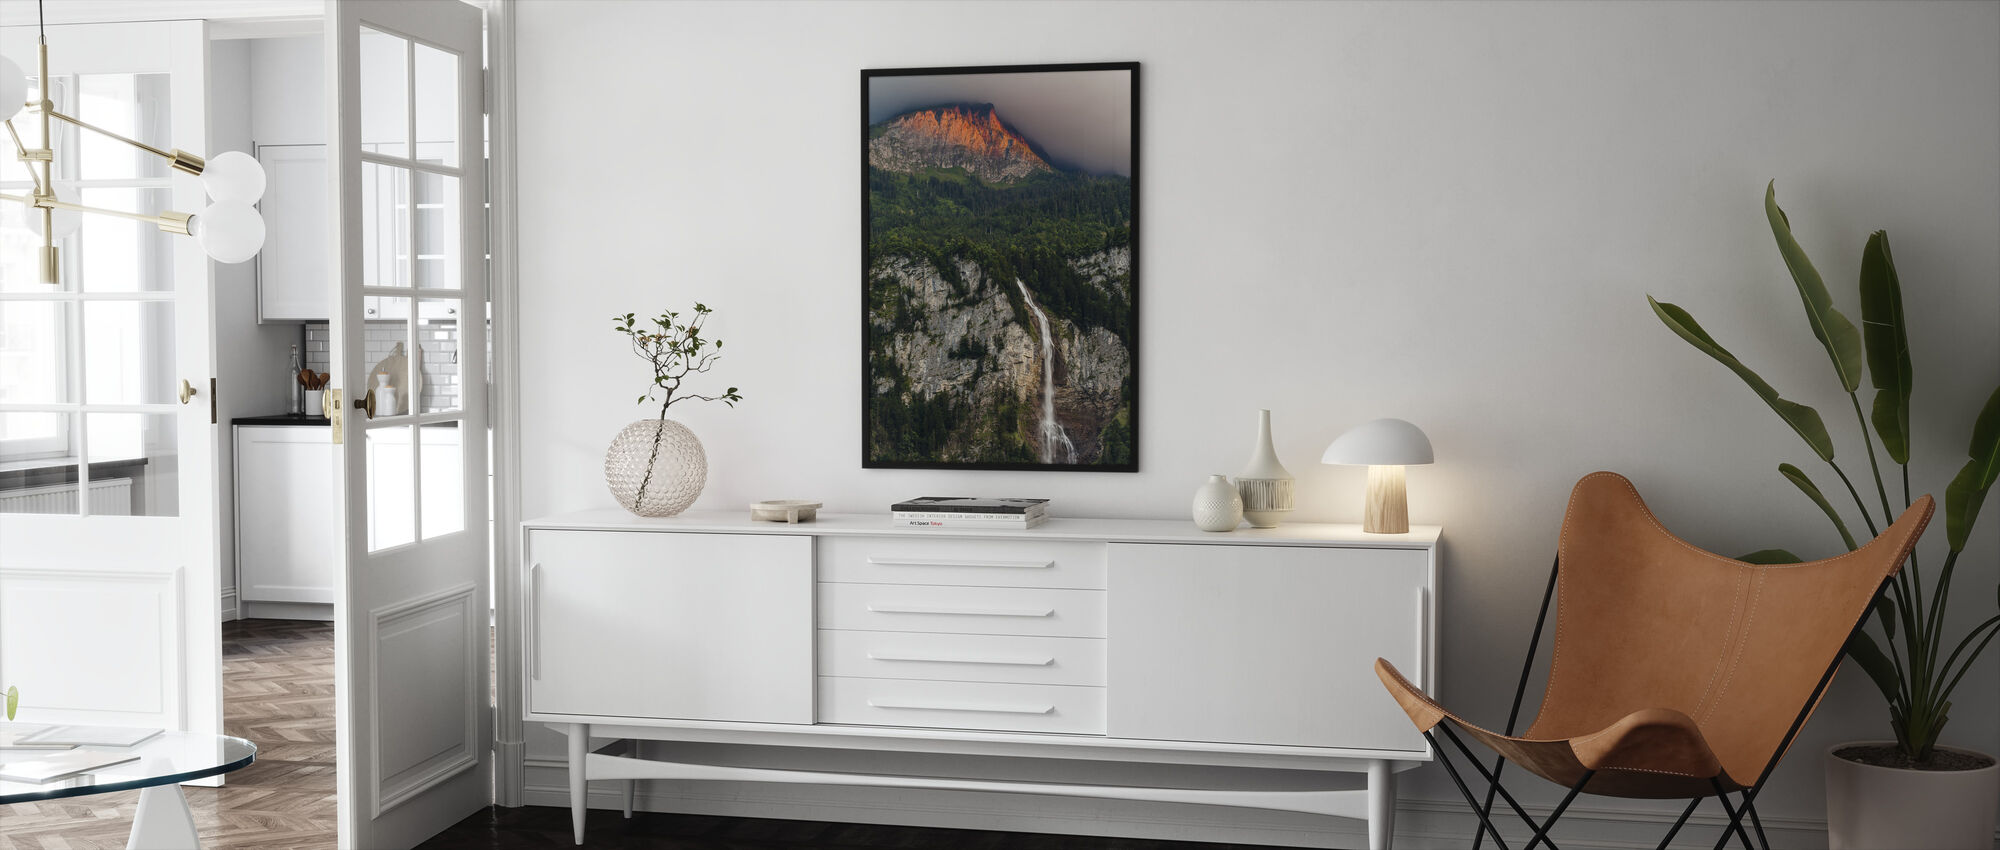 Touched by Light - Framed print - Living Room